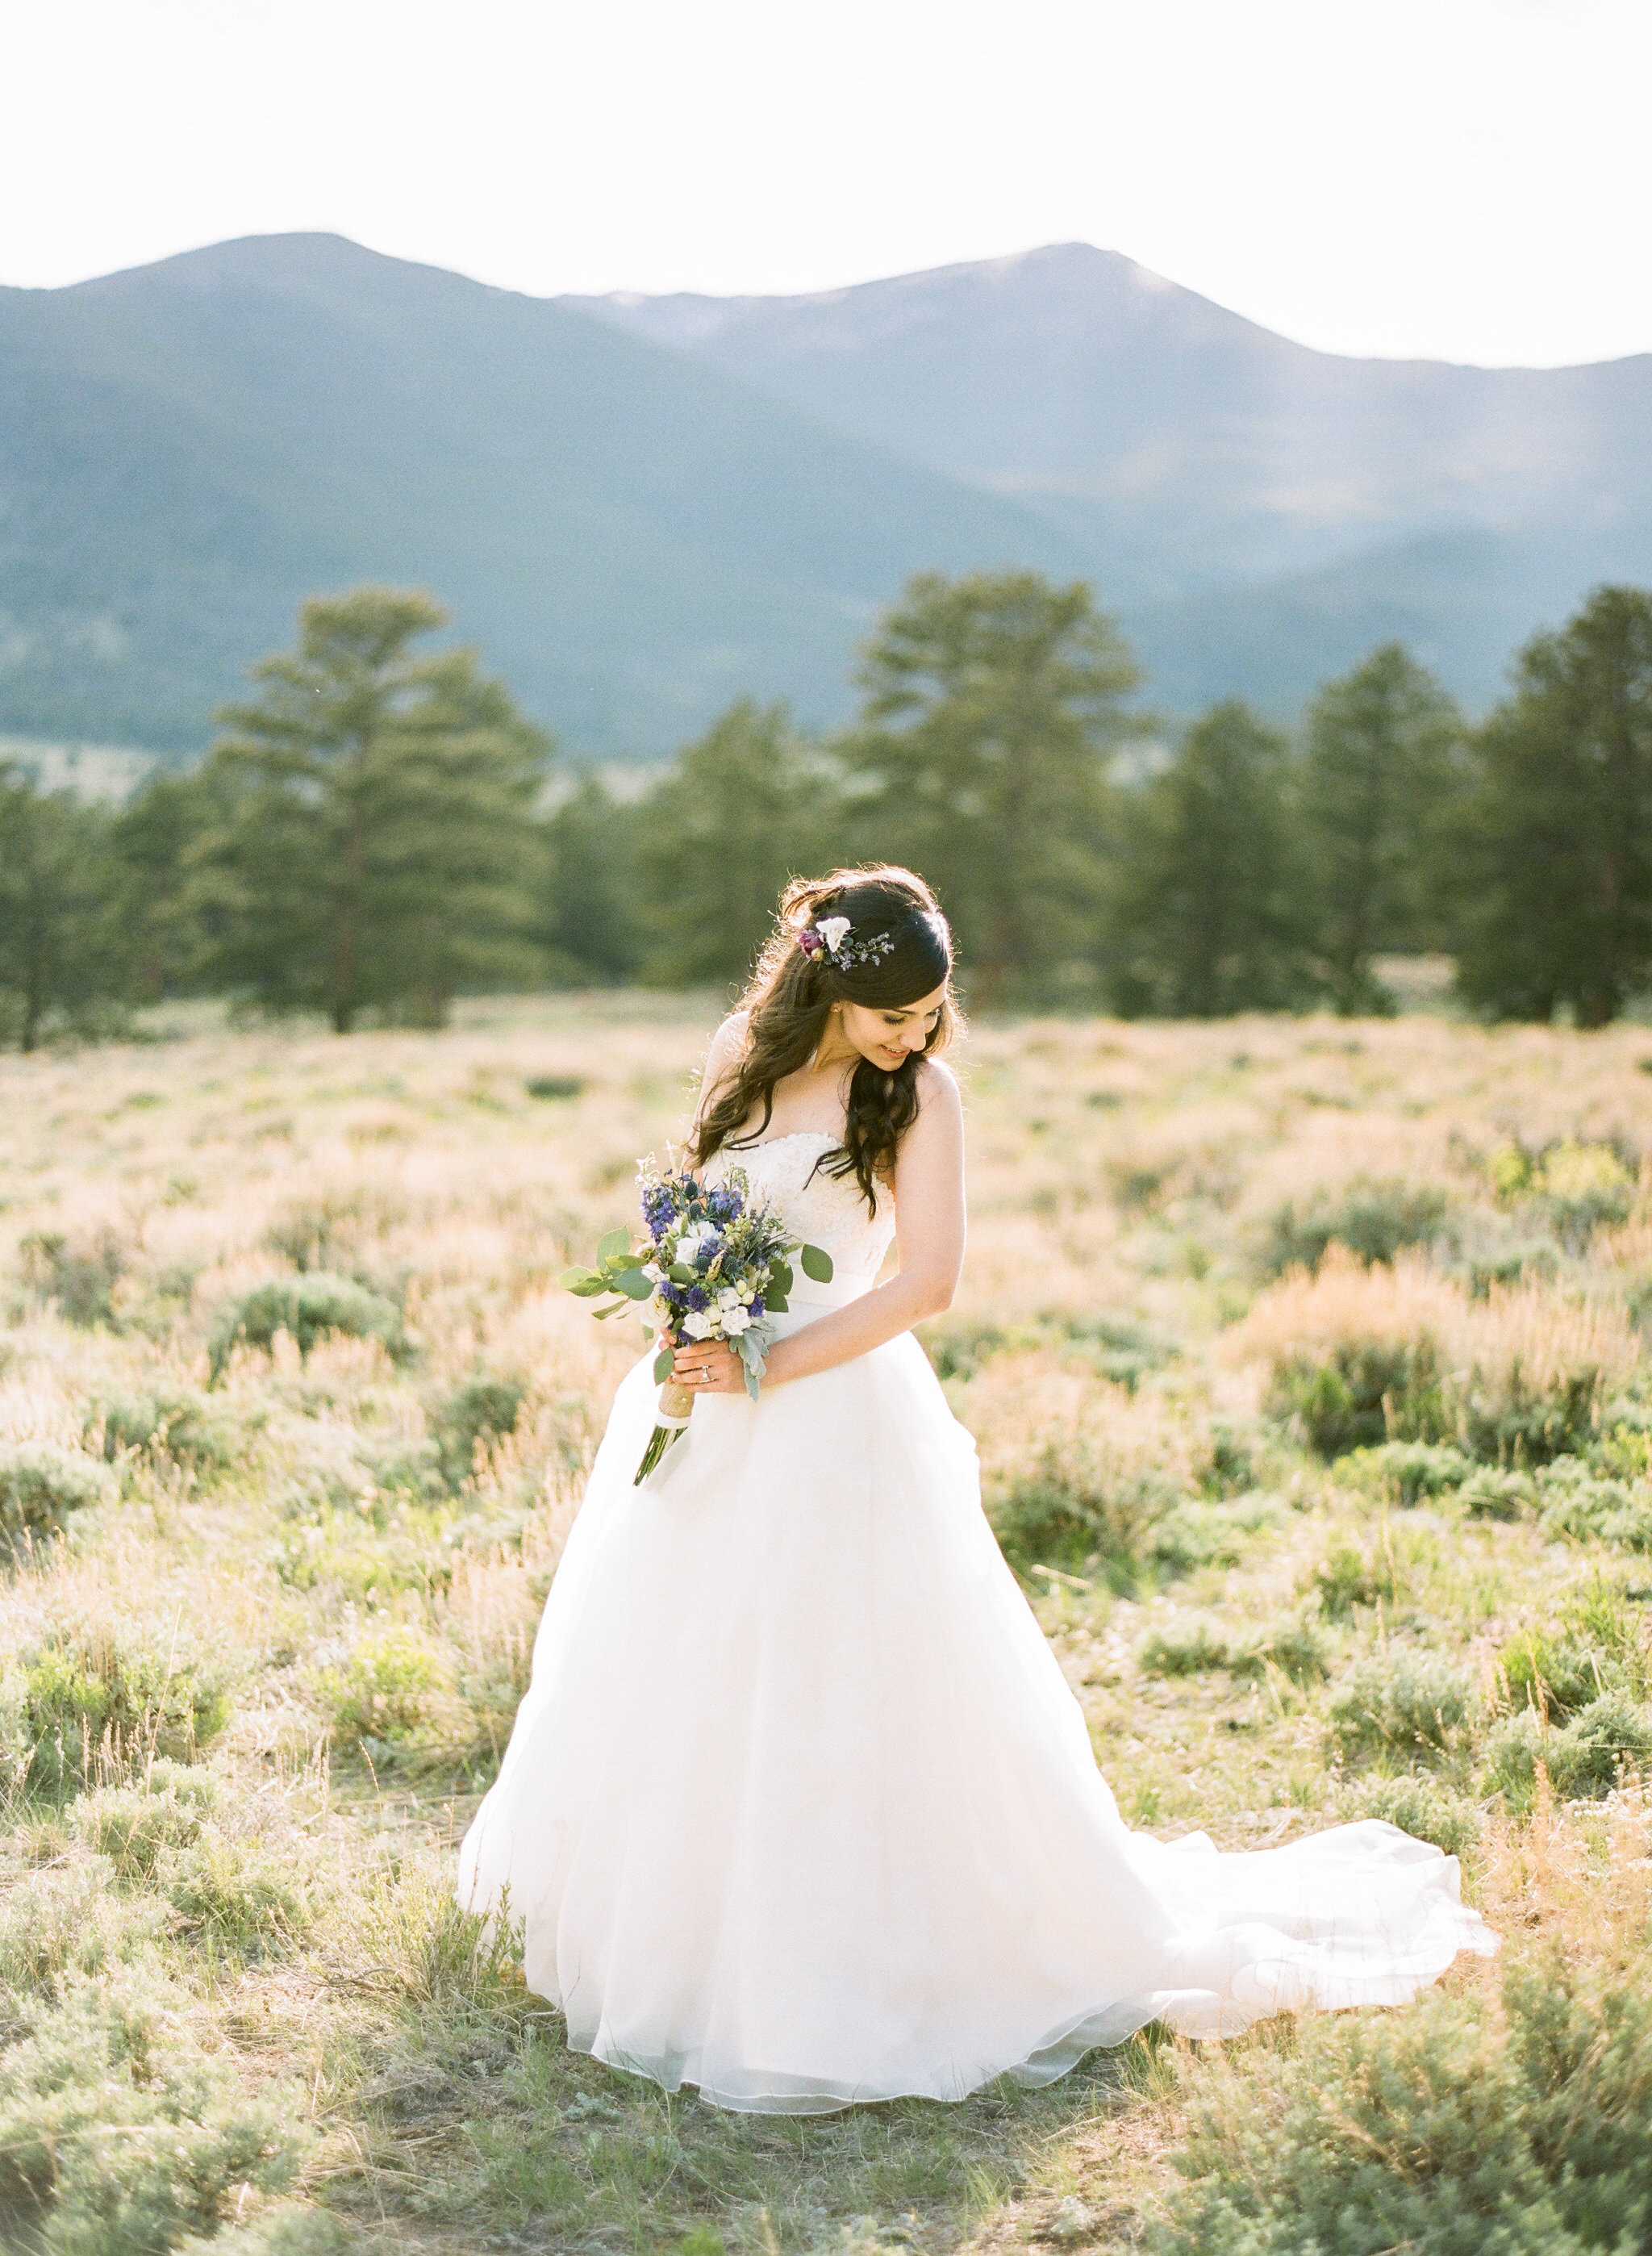 melisa-jackson-asheville-mountain-wedding-6.jpg